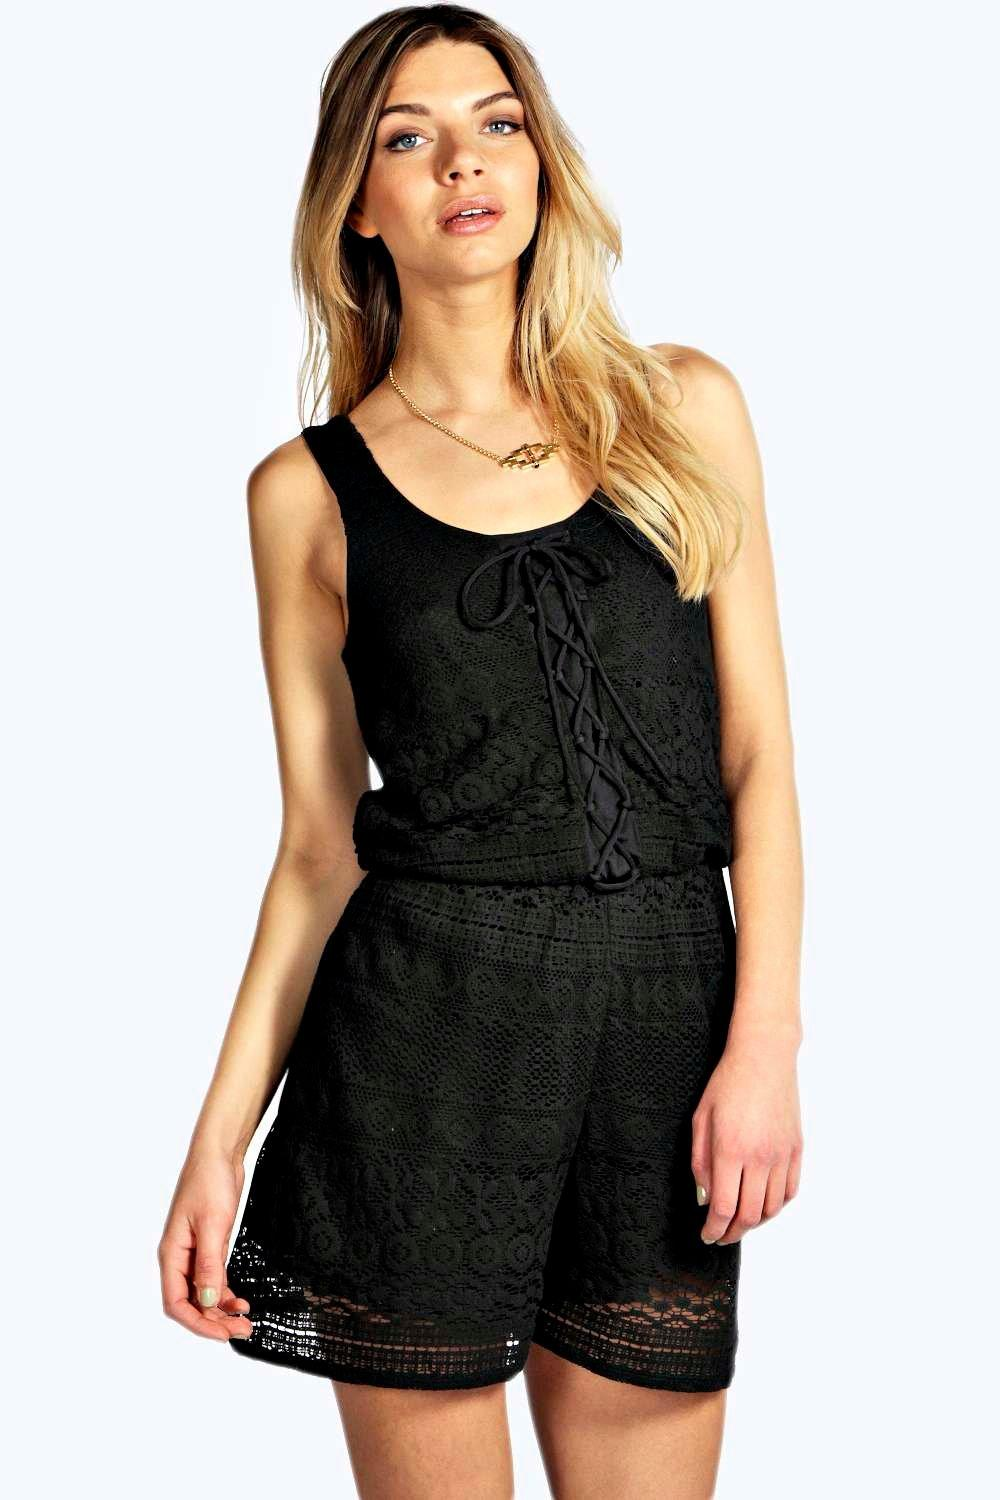 ed4be8263a1c DISCOUNT boohoo Suzy Lace Up Front Sleeveless Playsuit - black